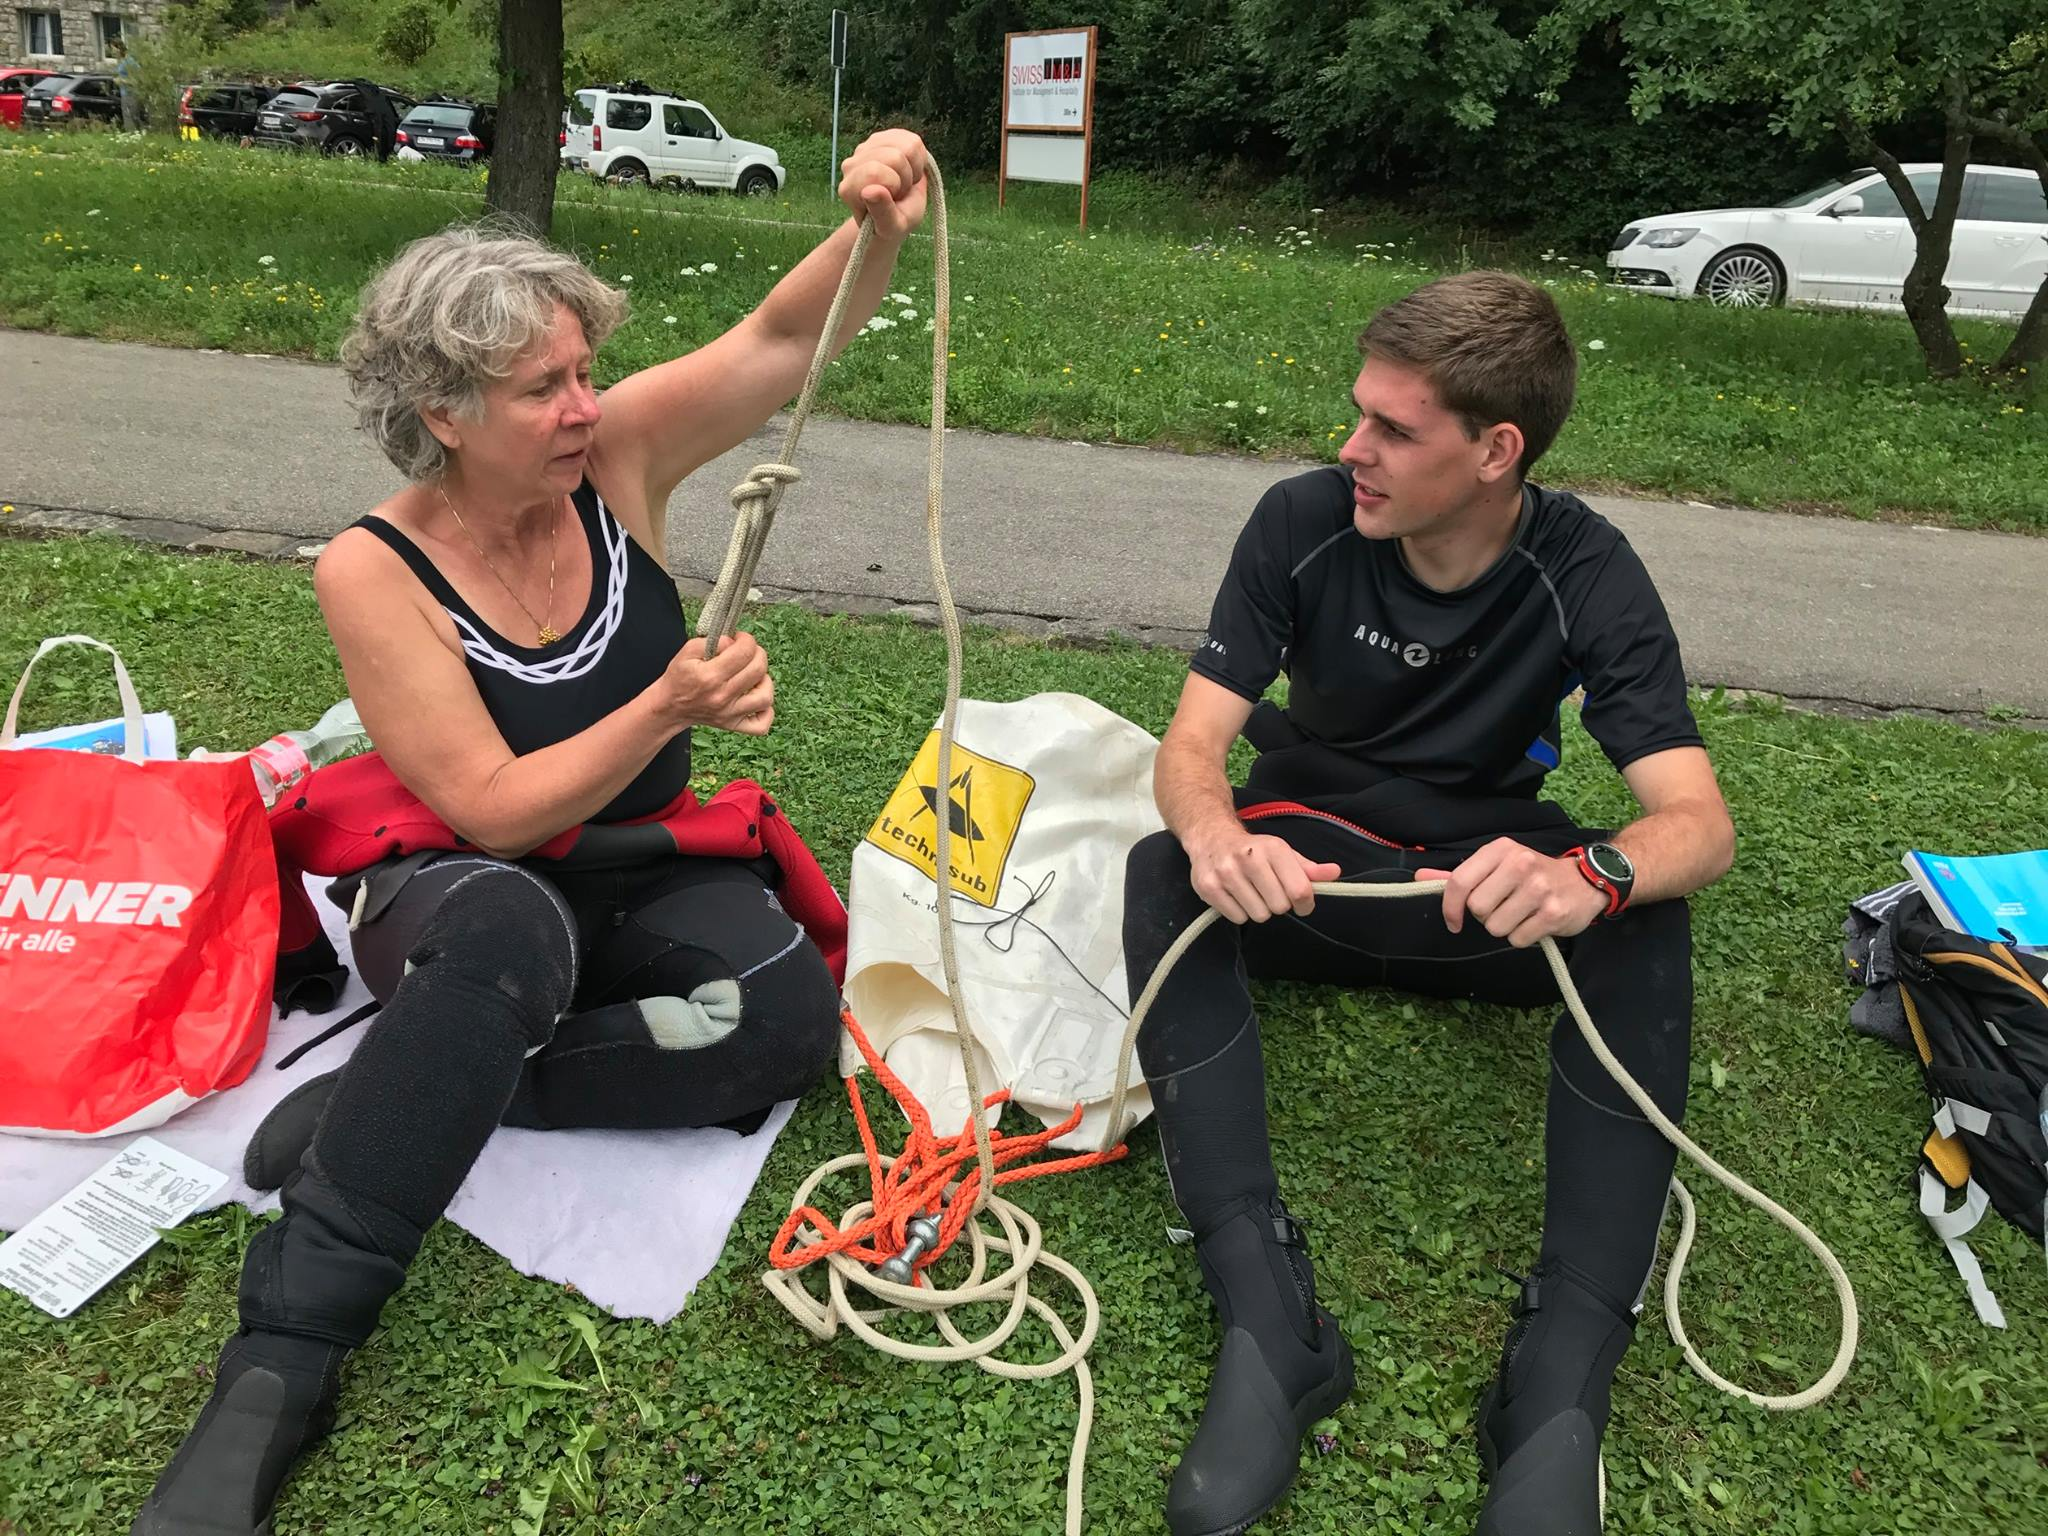 Theorielektion im Search & Revovery Diver-Kurs